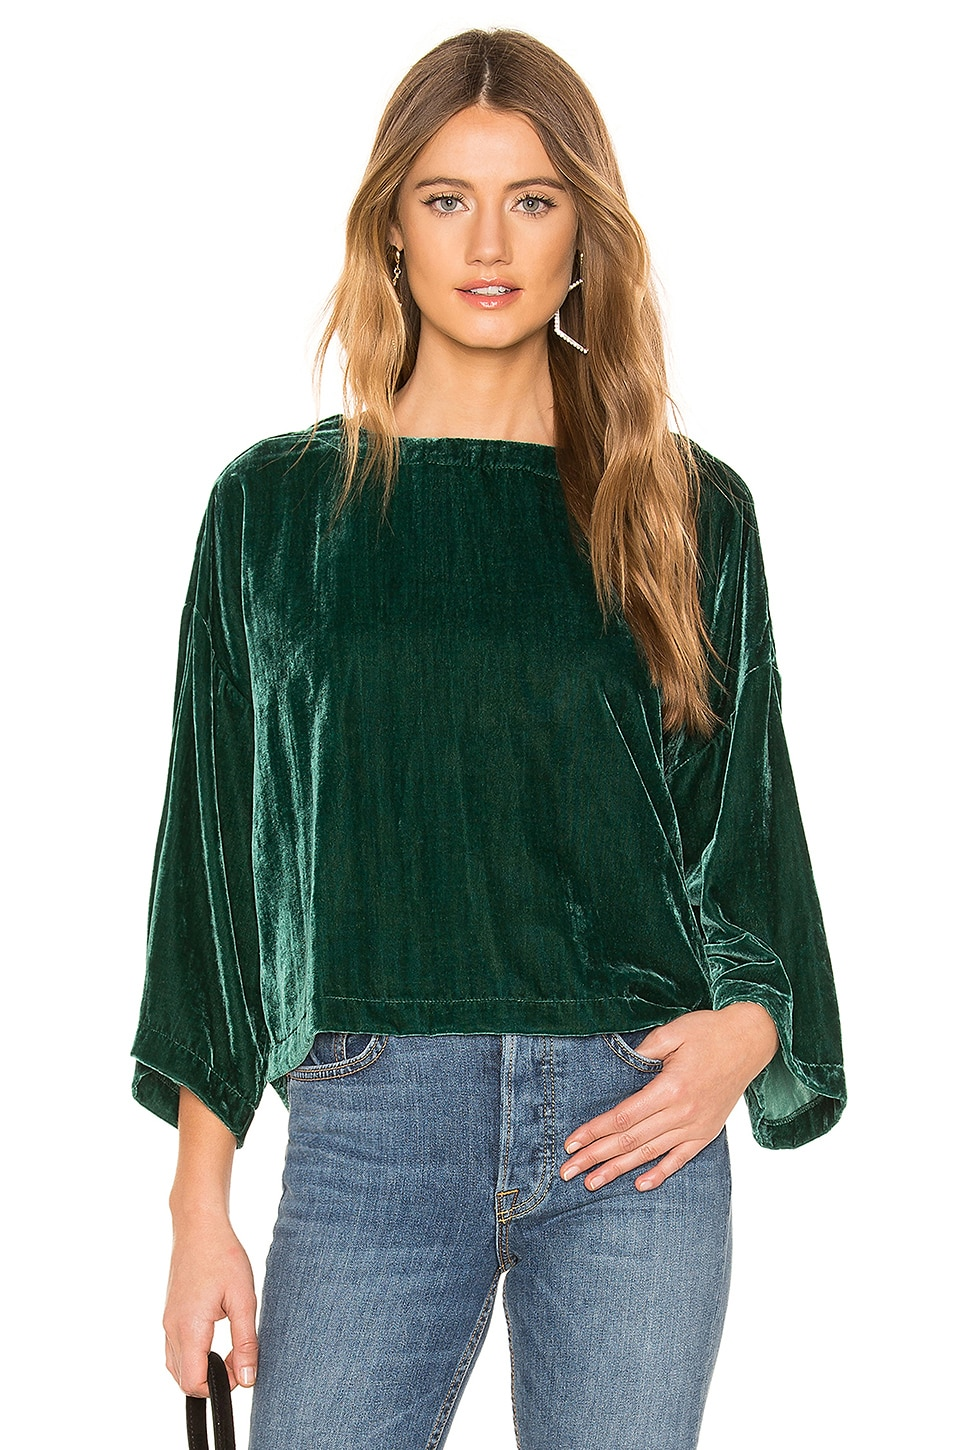 cupcakes and cashmere Christel Top in Winter Ivy